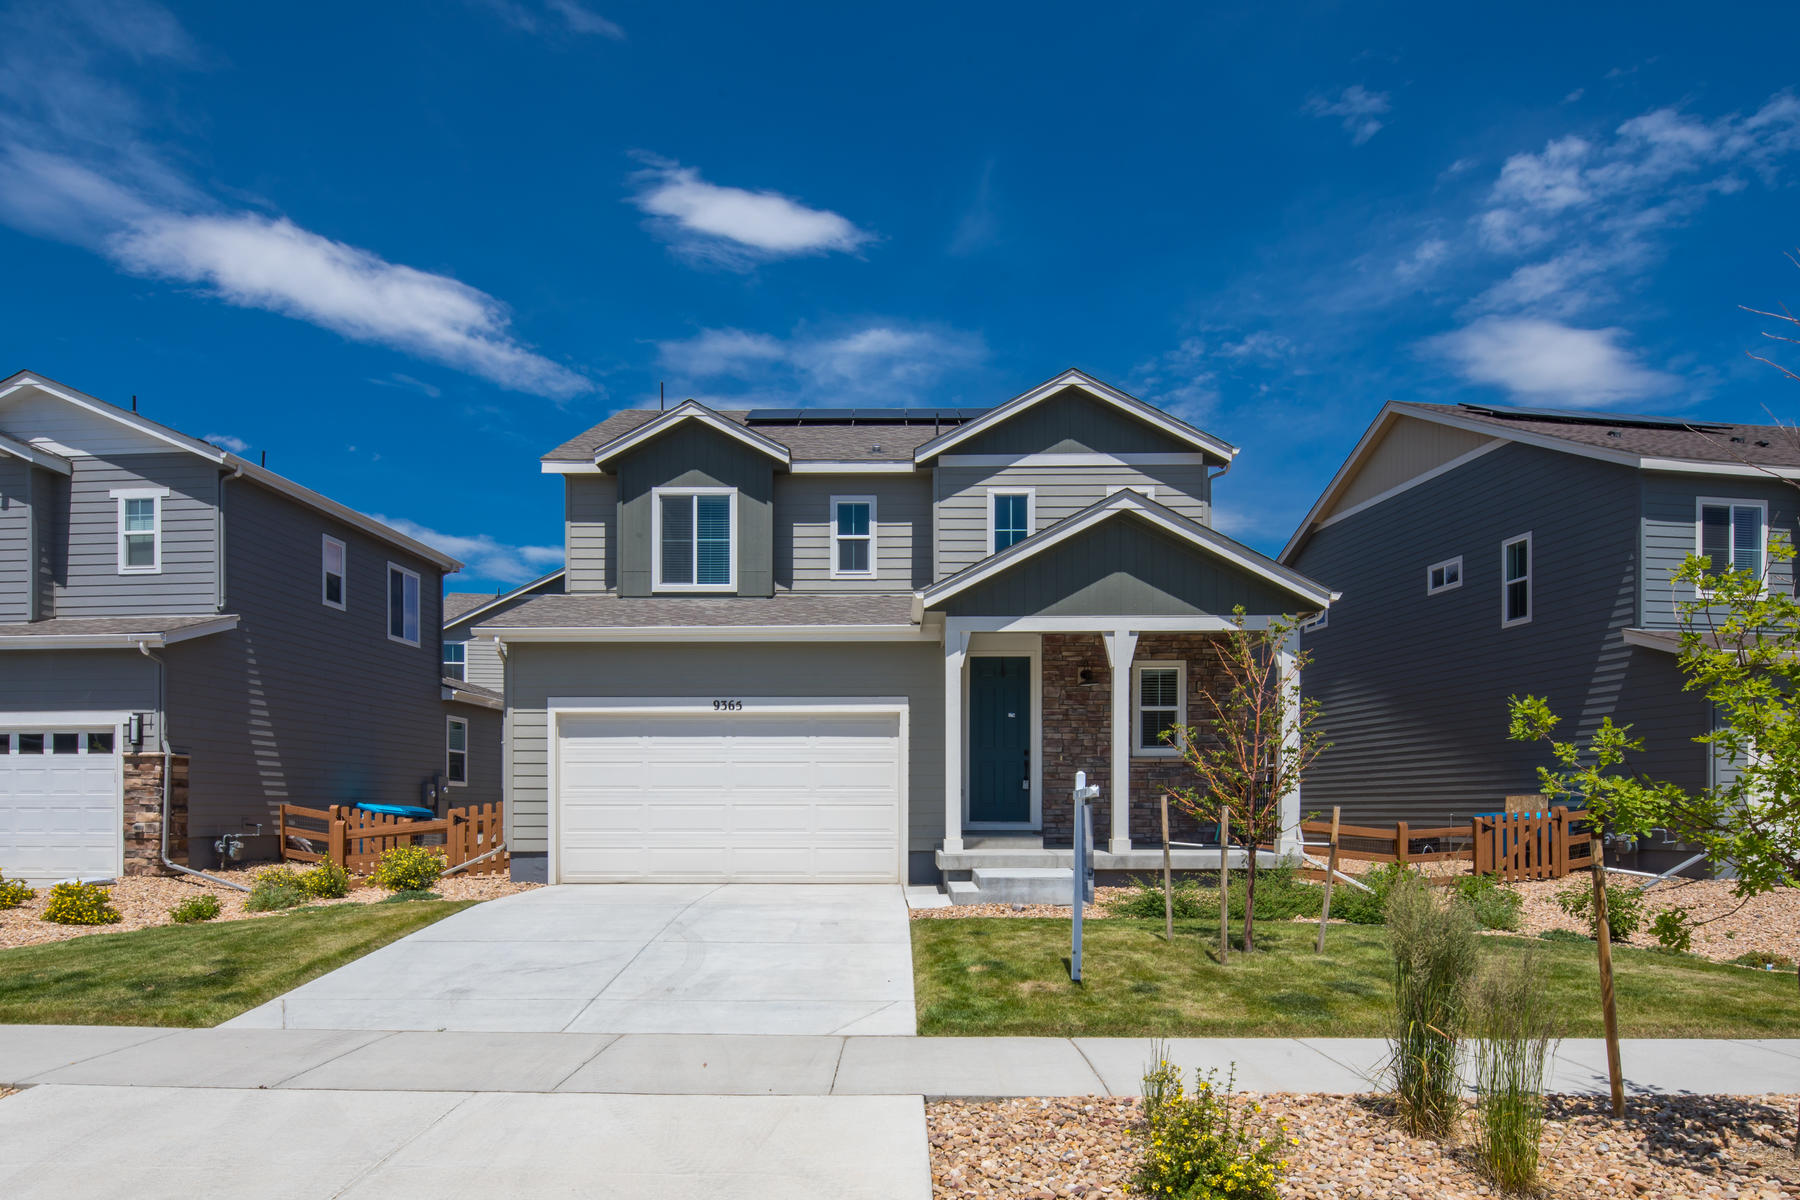 Single Family Homes for Sale at SPECTACULAR HOME IN THE CANDELAS! 9365 Joyce Way Arvada, Colorado 80007 United States